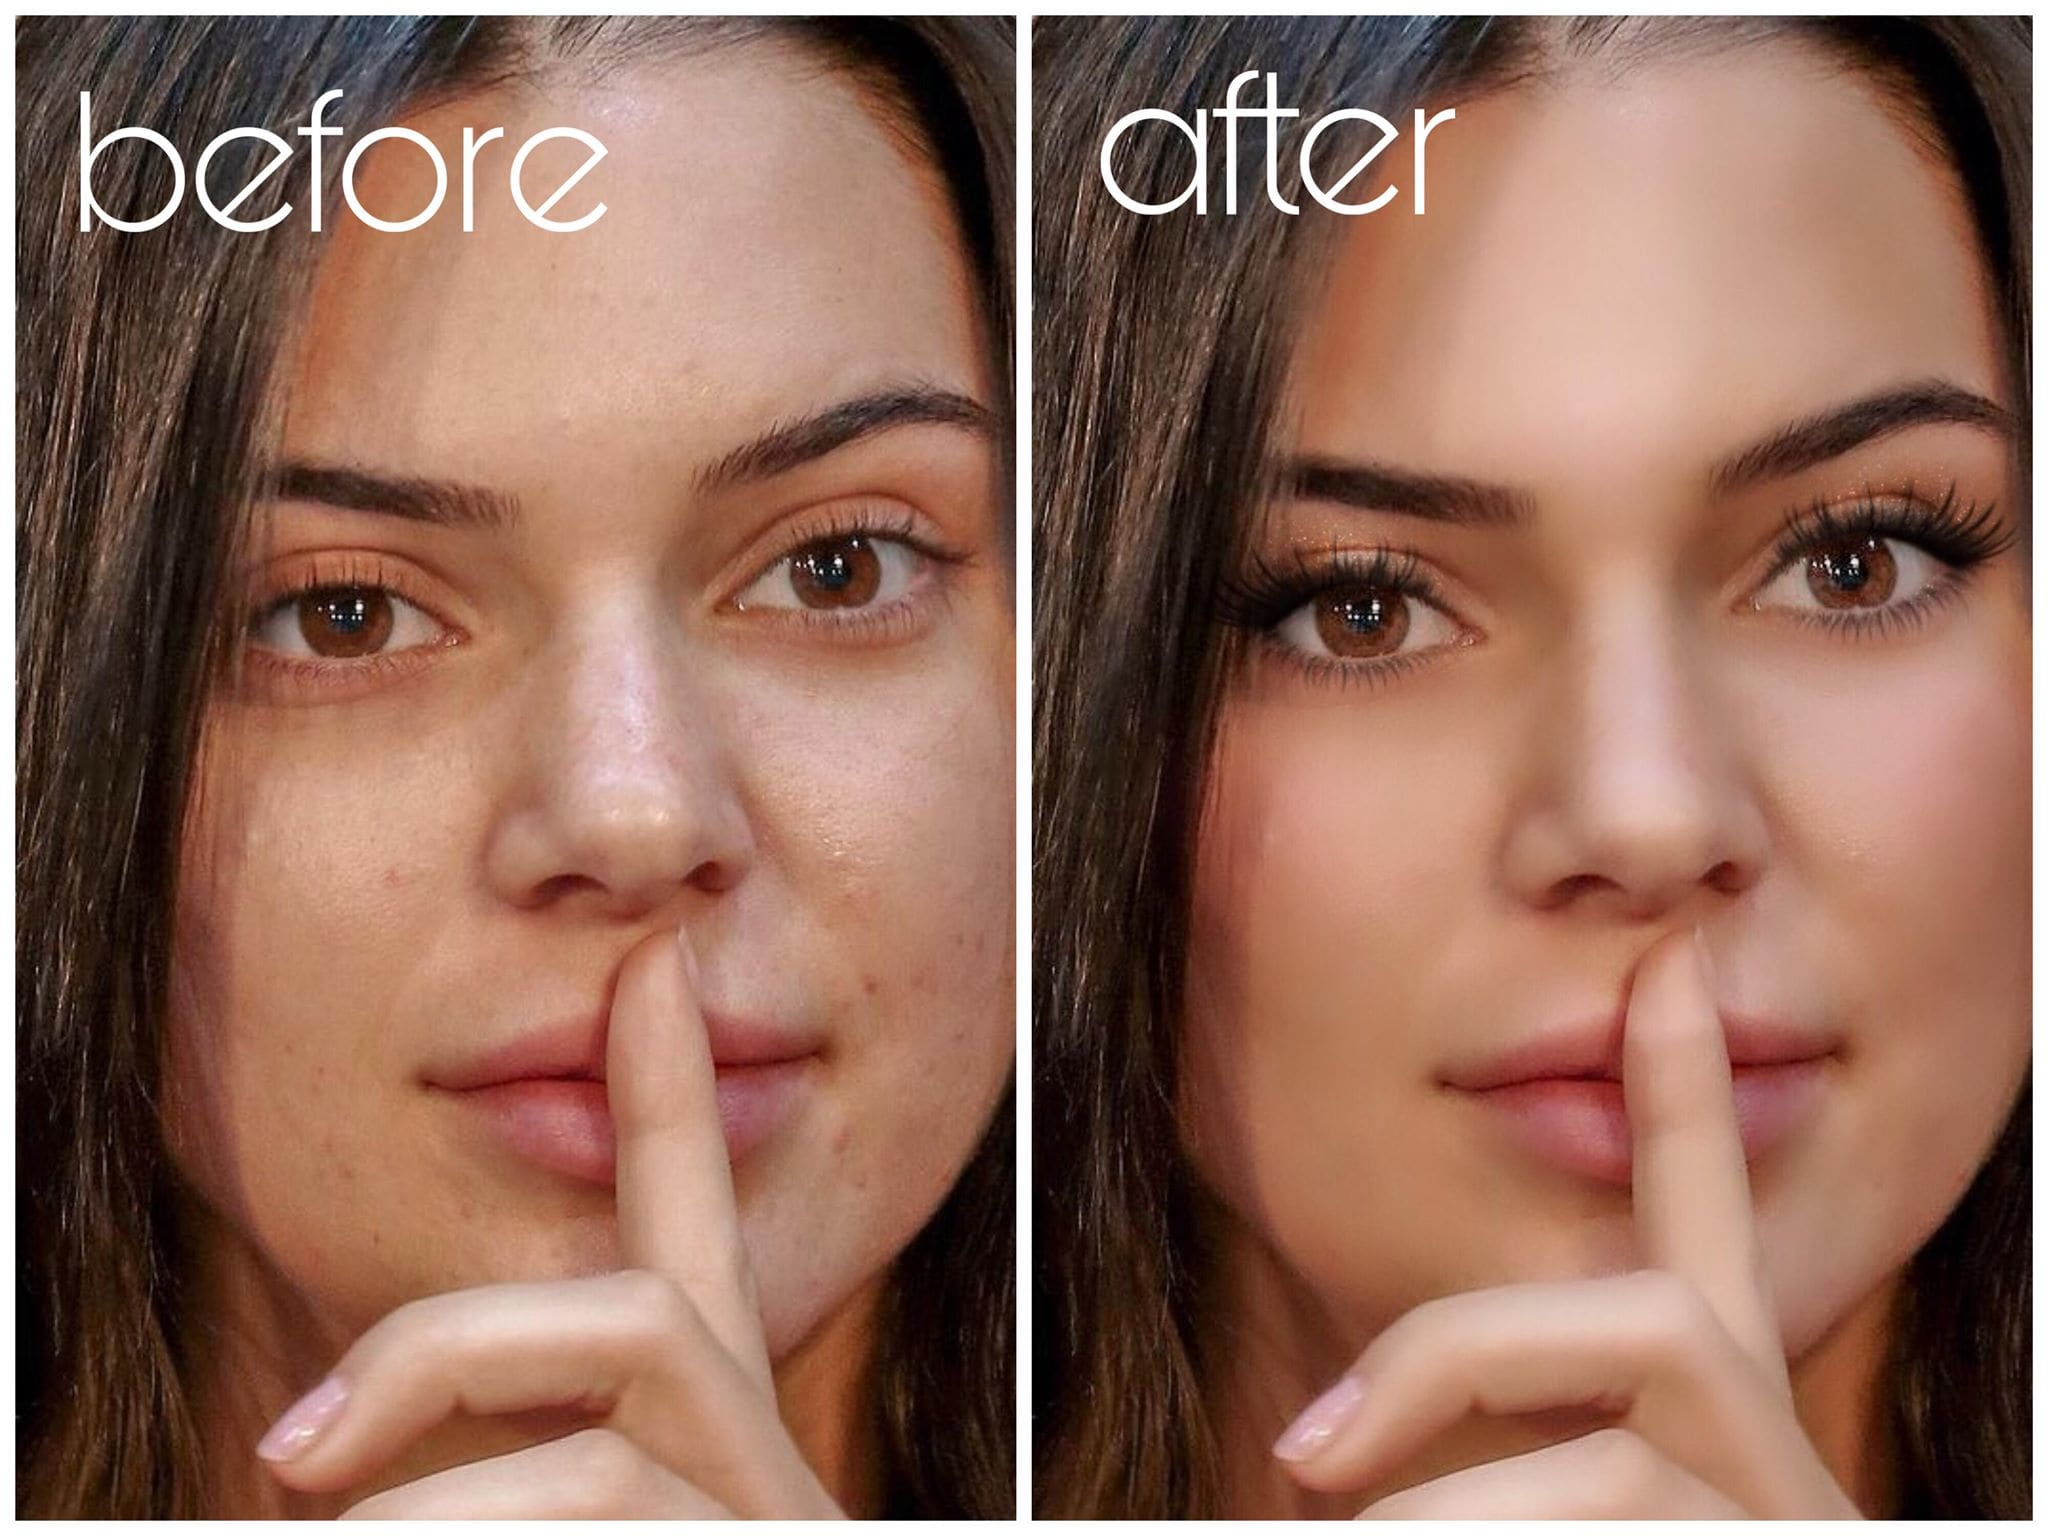 Add Makeup To Your Face In The Photo By